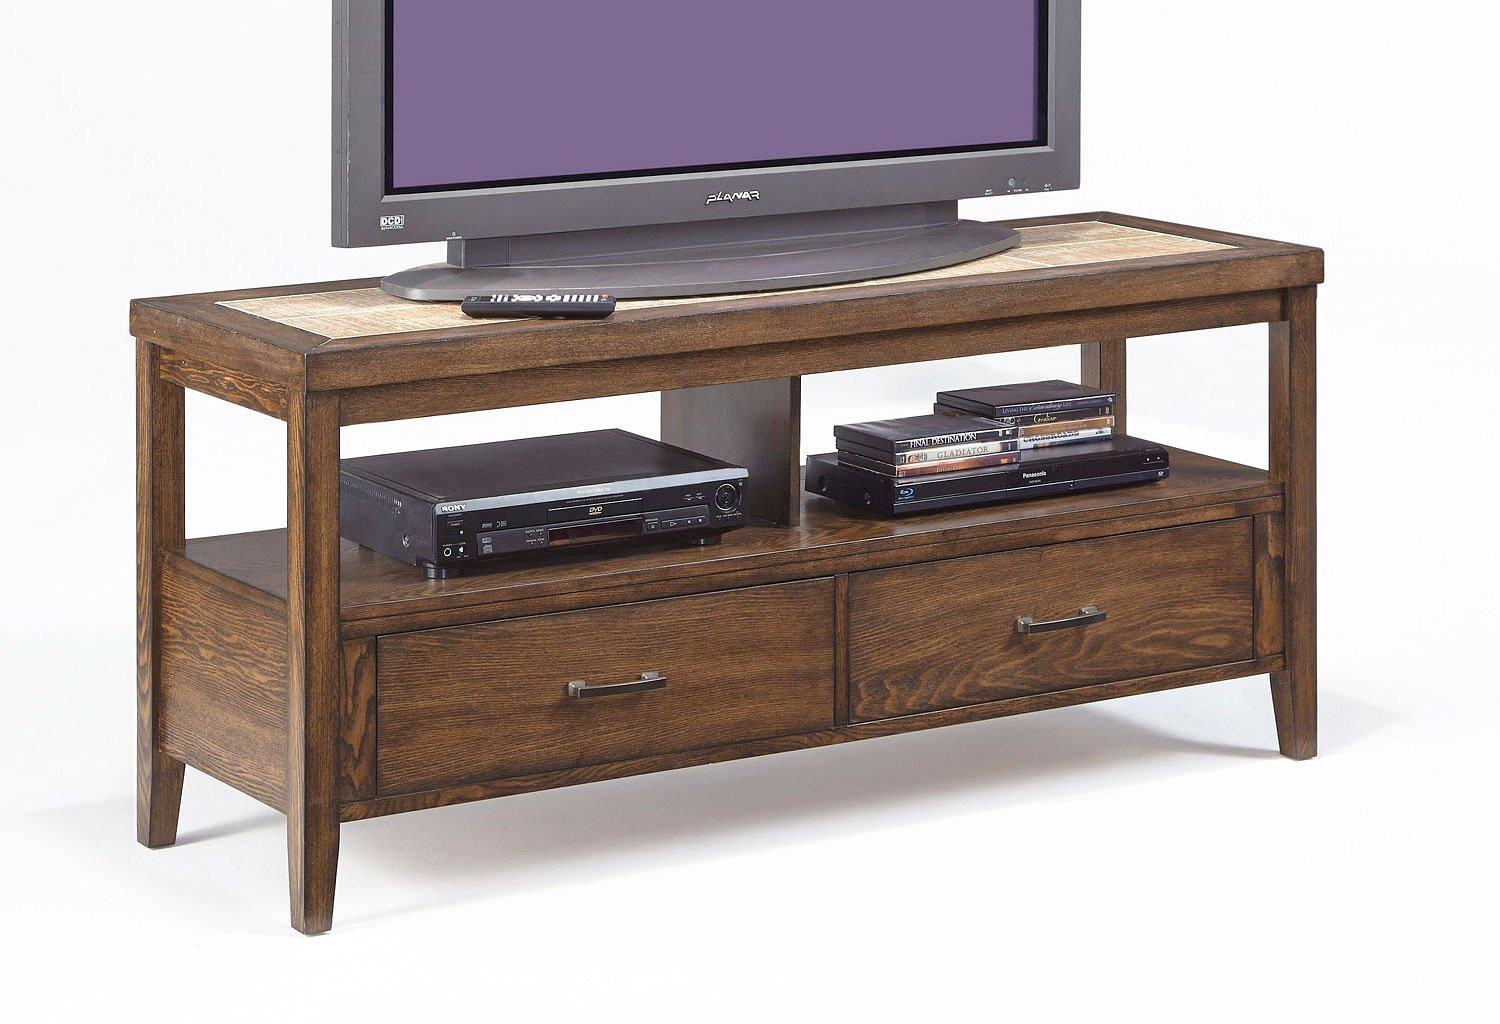 25 Creative 54 Inch Tv Stand Pictures | Cakestandlady In Sinclair Blue 54 Inch Tv Stands (Photo 13 of 30)